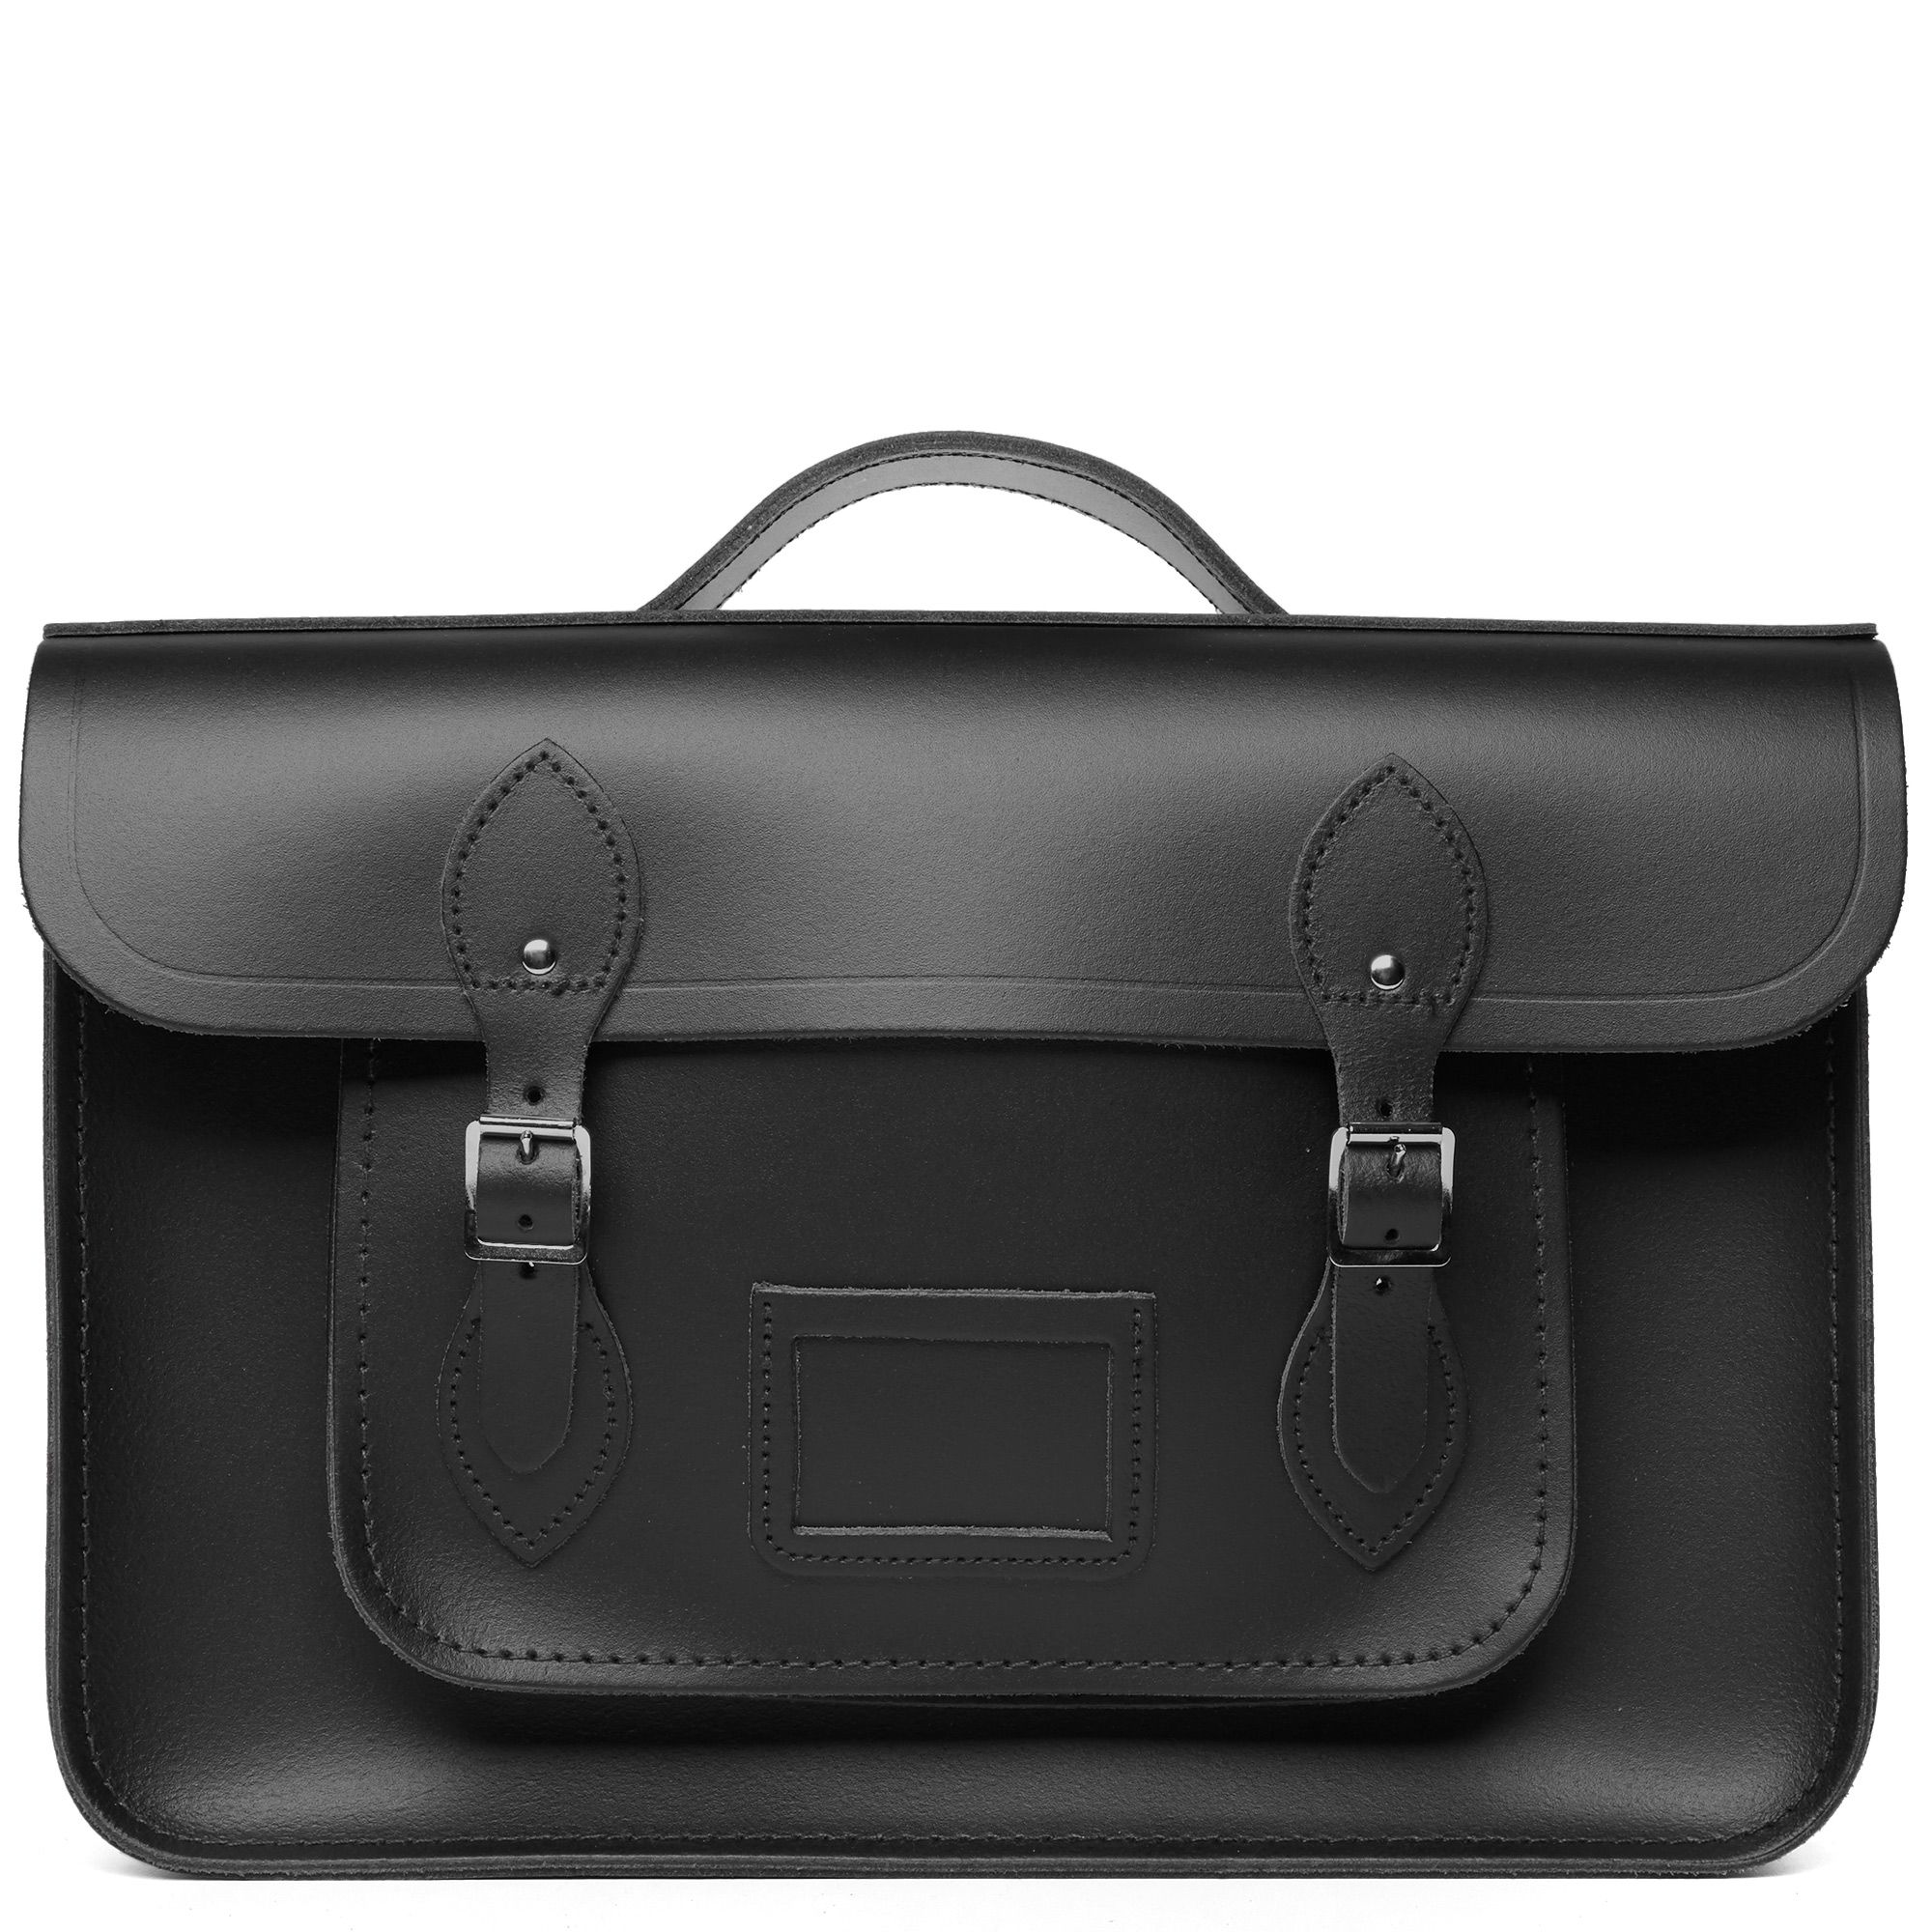 the cambridge satchel company batchel noir